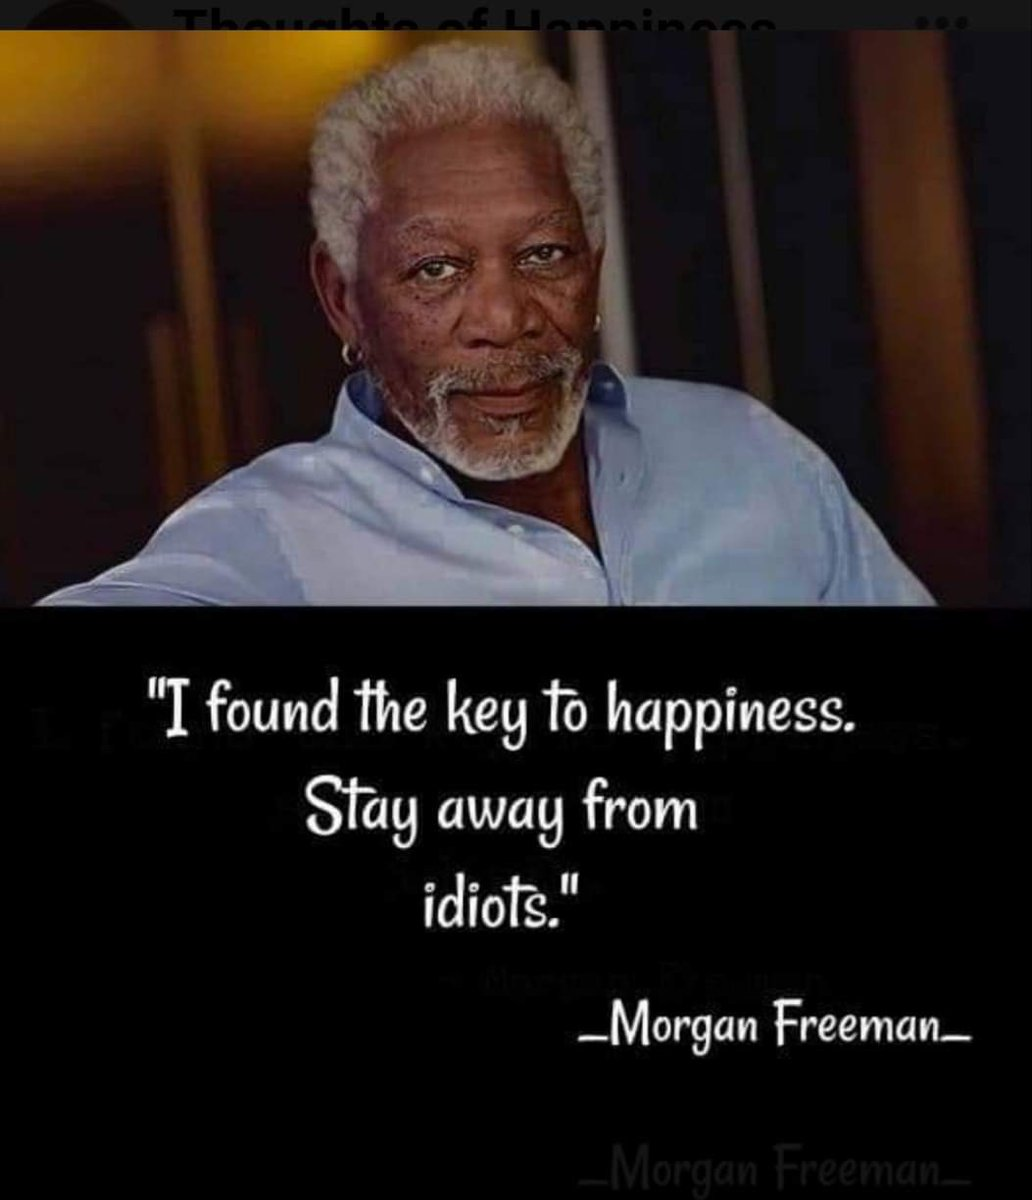 Happy Thursday Friends, 😘  Have a fantabulous day and stay away from idiots 🤪#akexplorations #thursdaymorning #MorganFreeman #wisewords #thursdayvibes